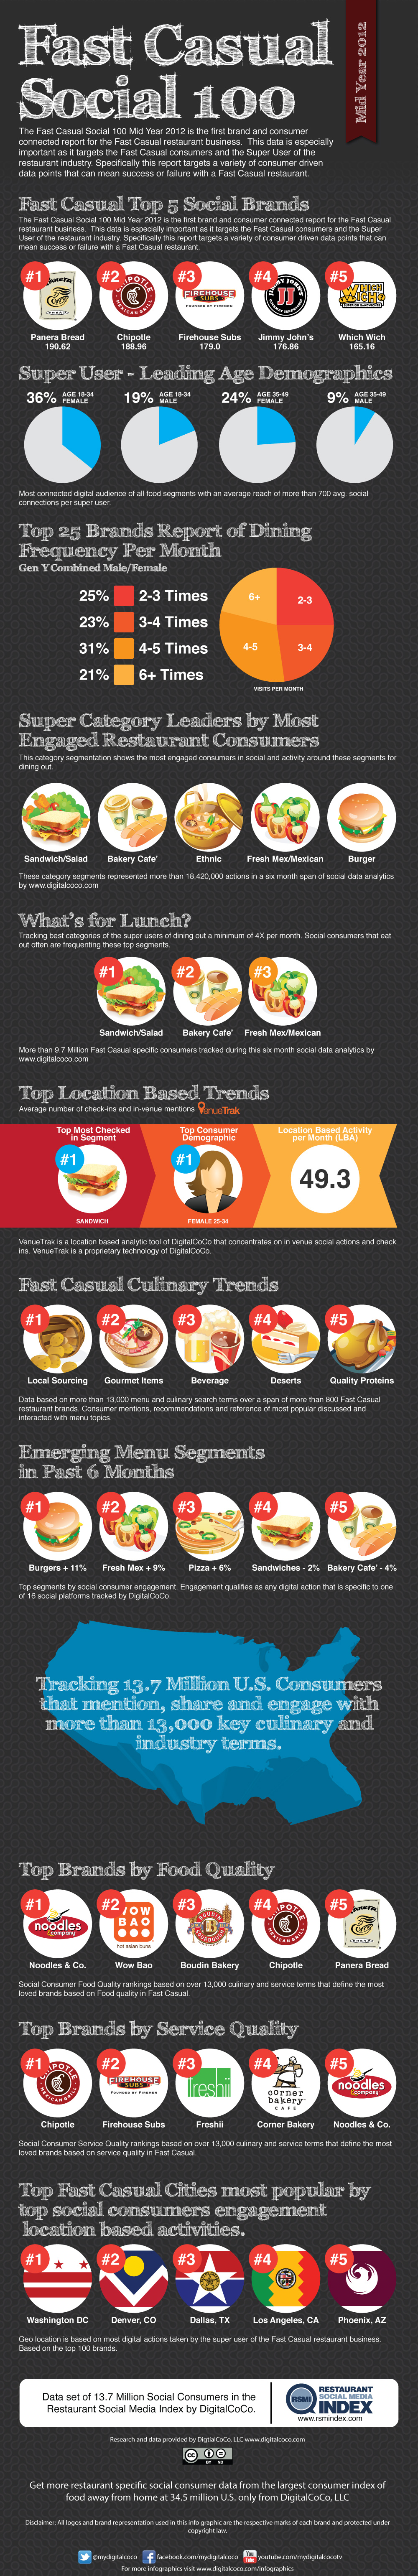 Fast-Casual-Social-100-Mid-Year2012.jpg